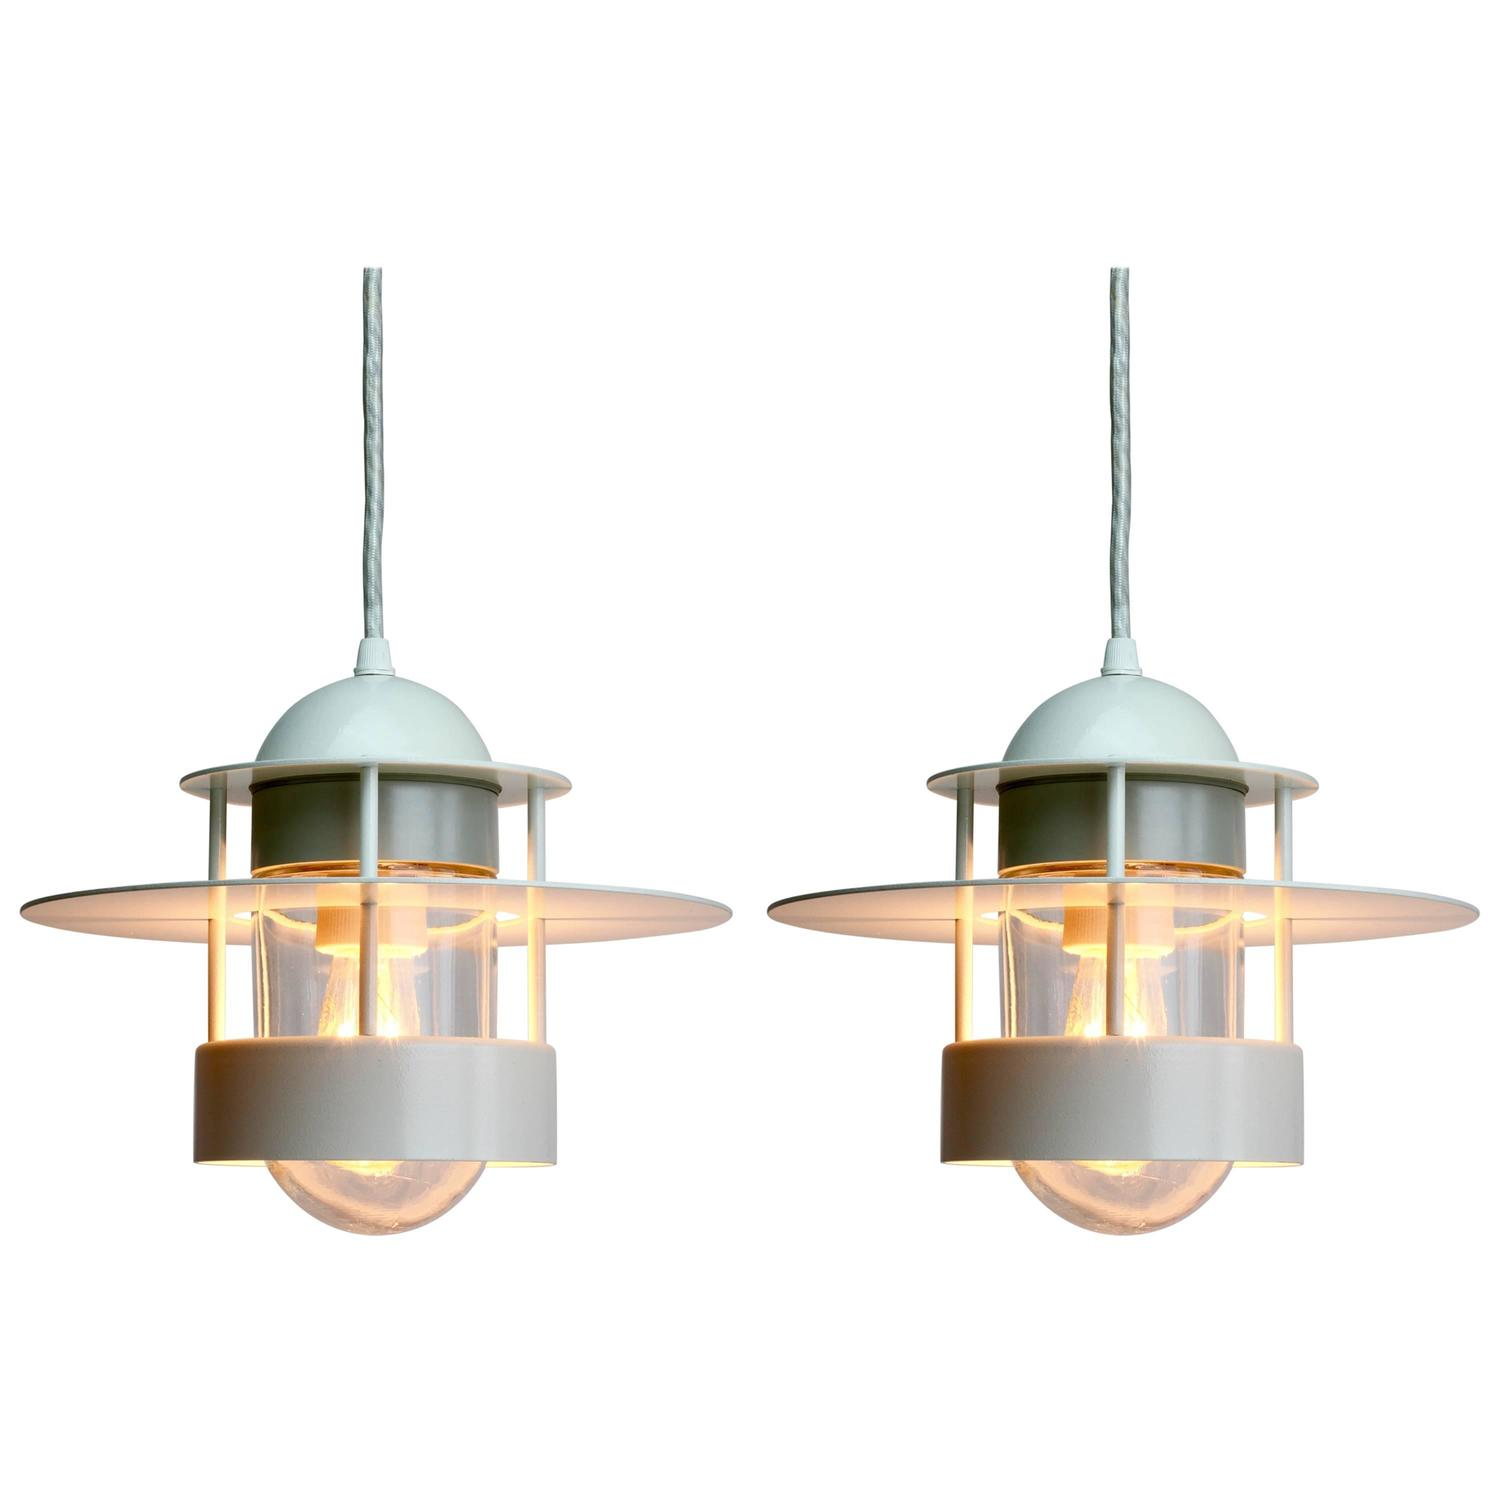 pair of albertslund industrial style pendant lights for louis